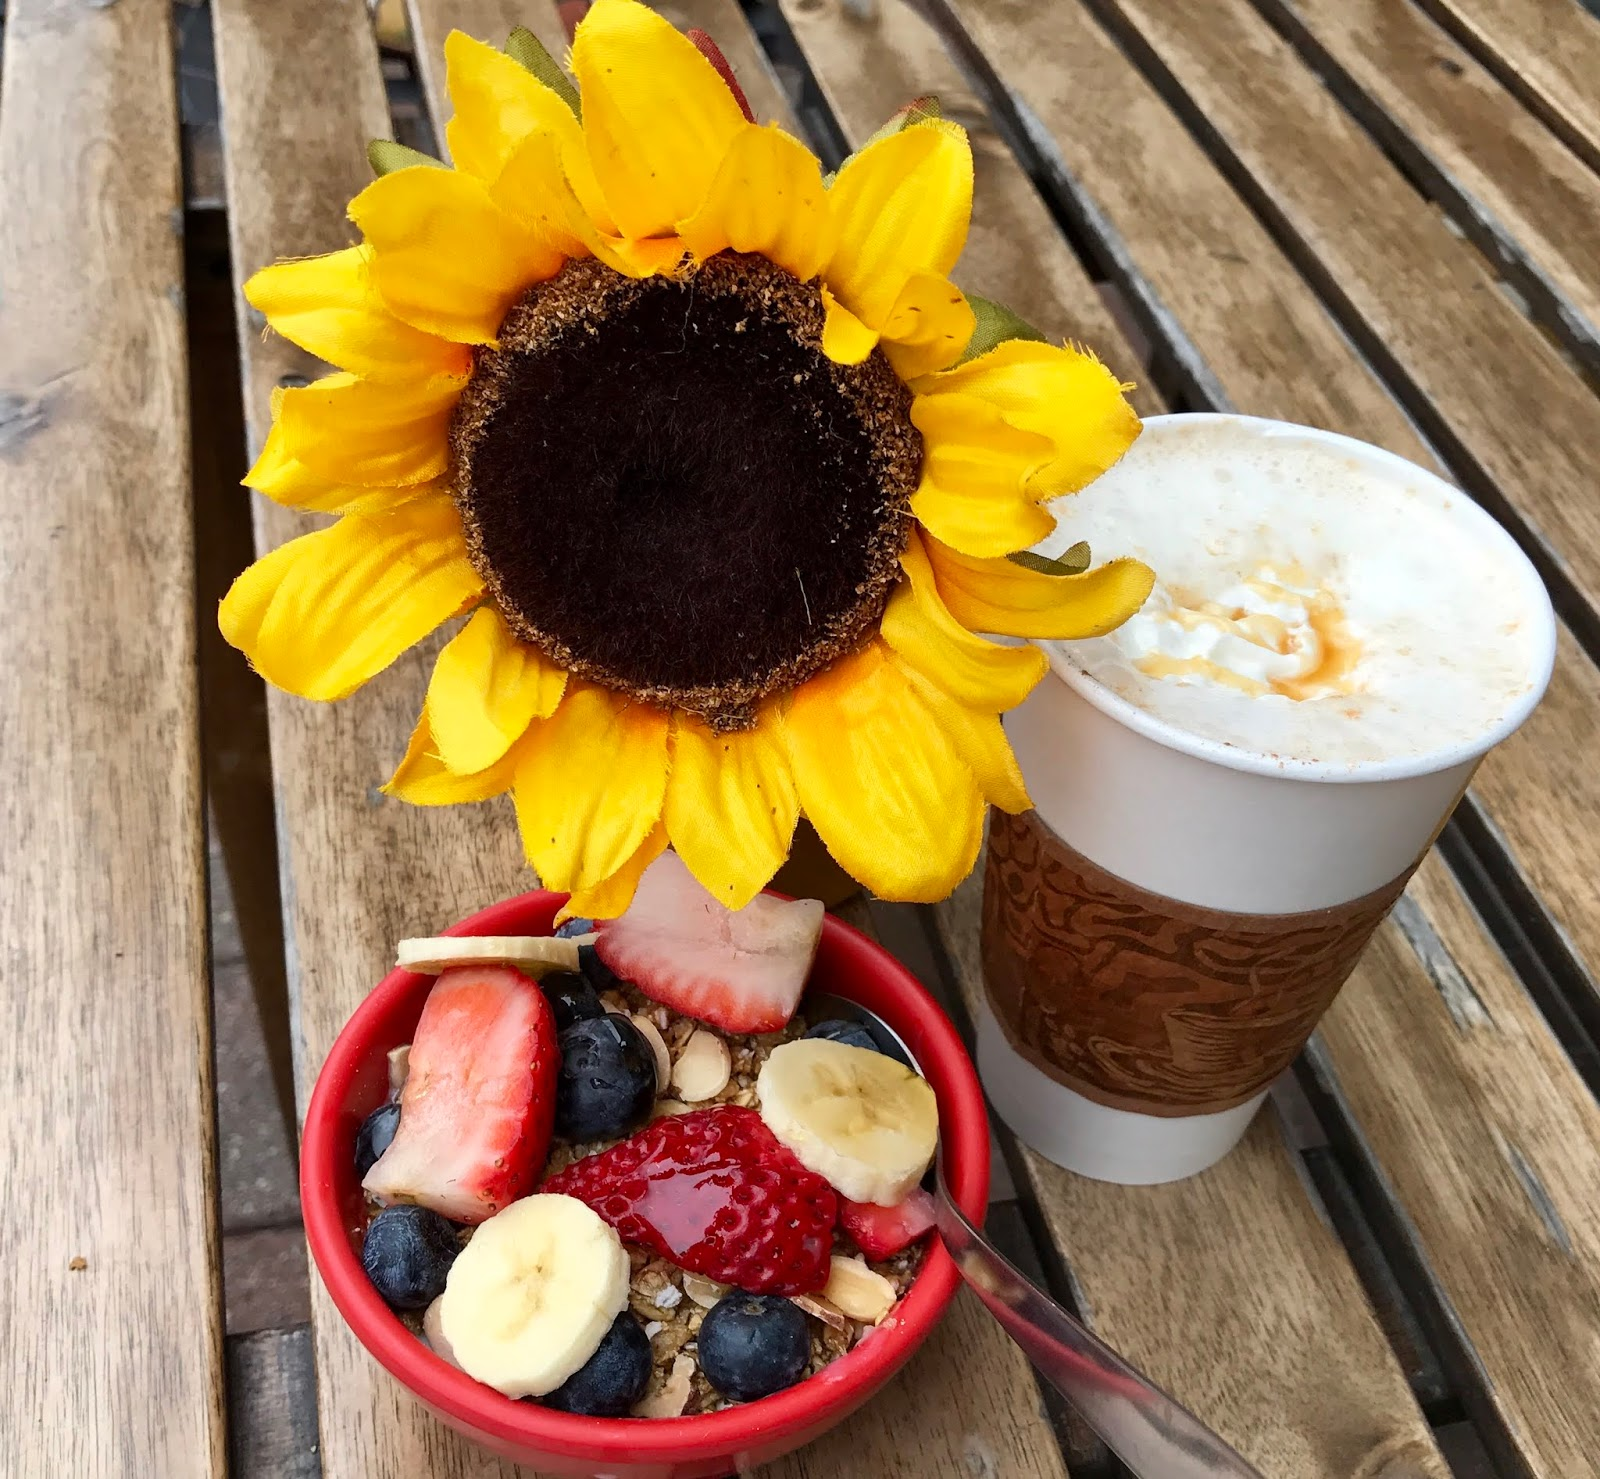 Image: Yellow Flower on table with oatmeal and coffee. Woman sharing how she resets her life on a daily bases seen first on bits and babbles blog